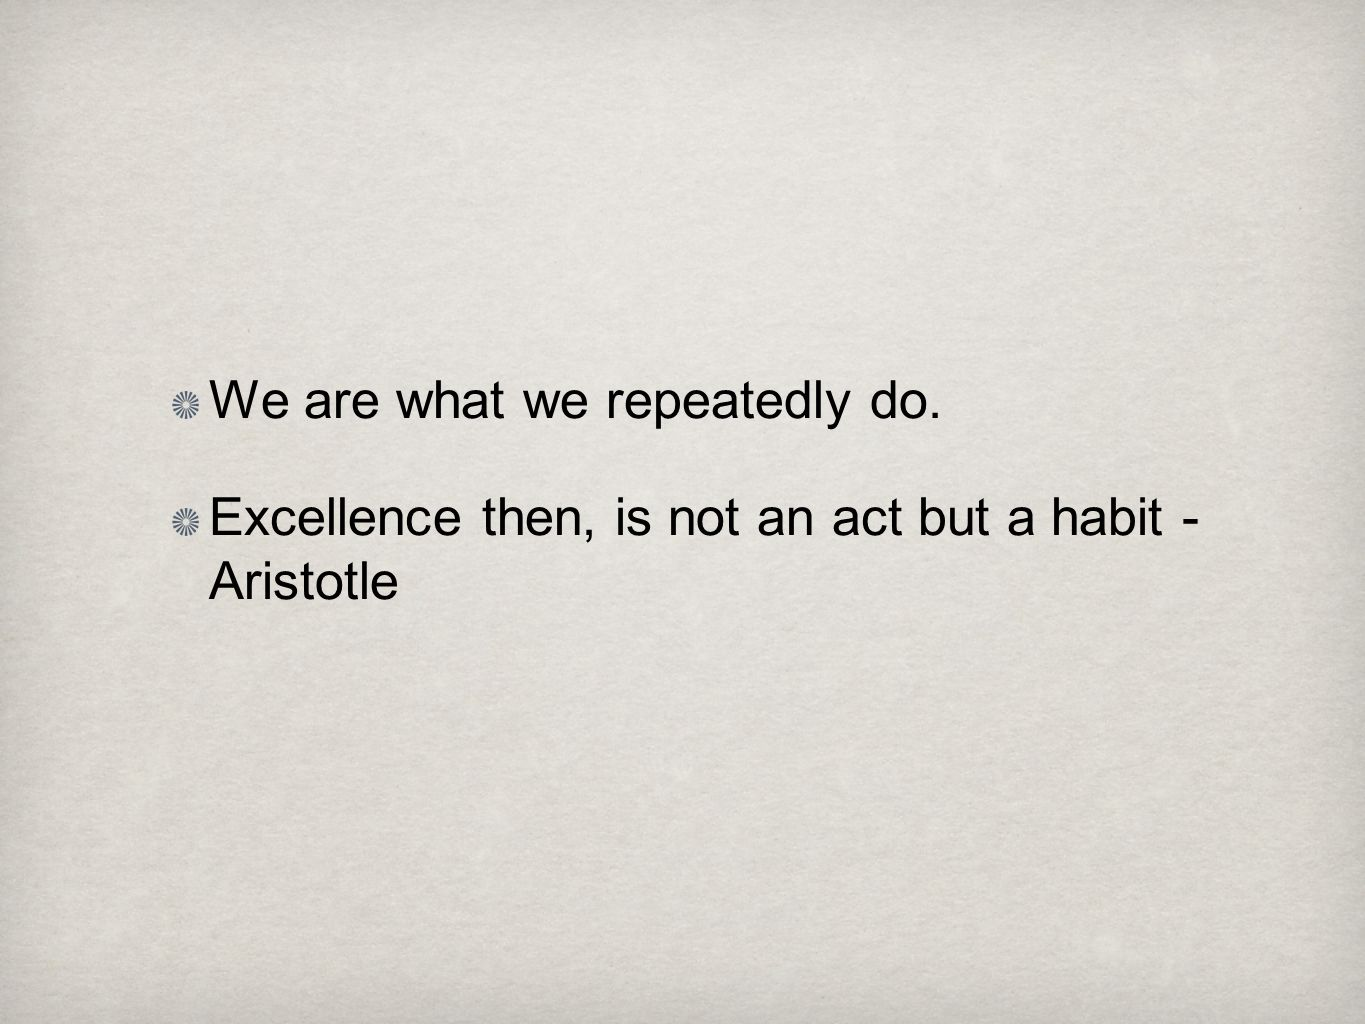 We are what we repeatedly do. Excellence then, is not an act but a habit - Aristotle